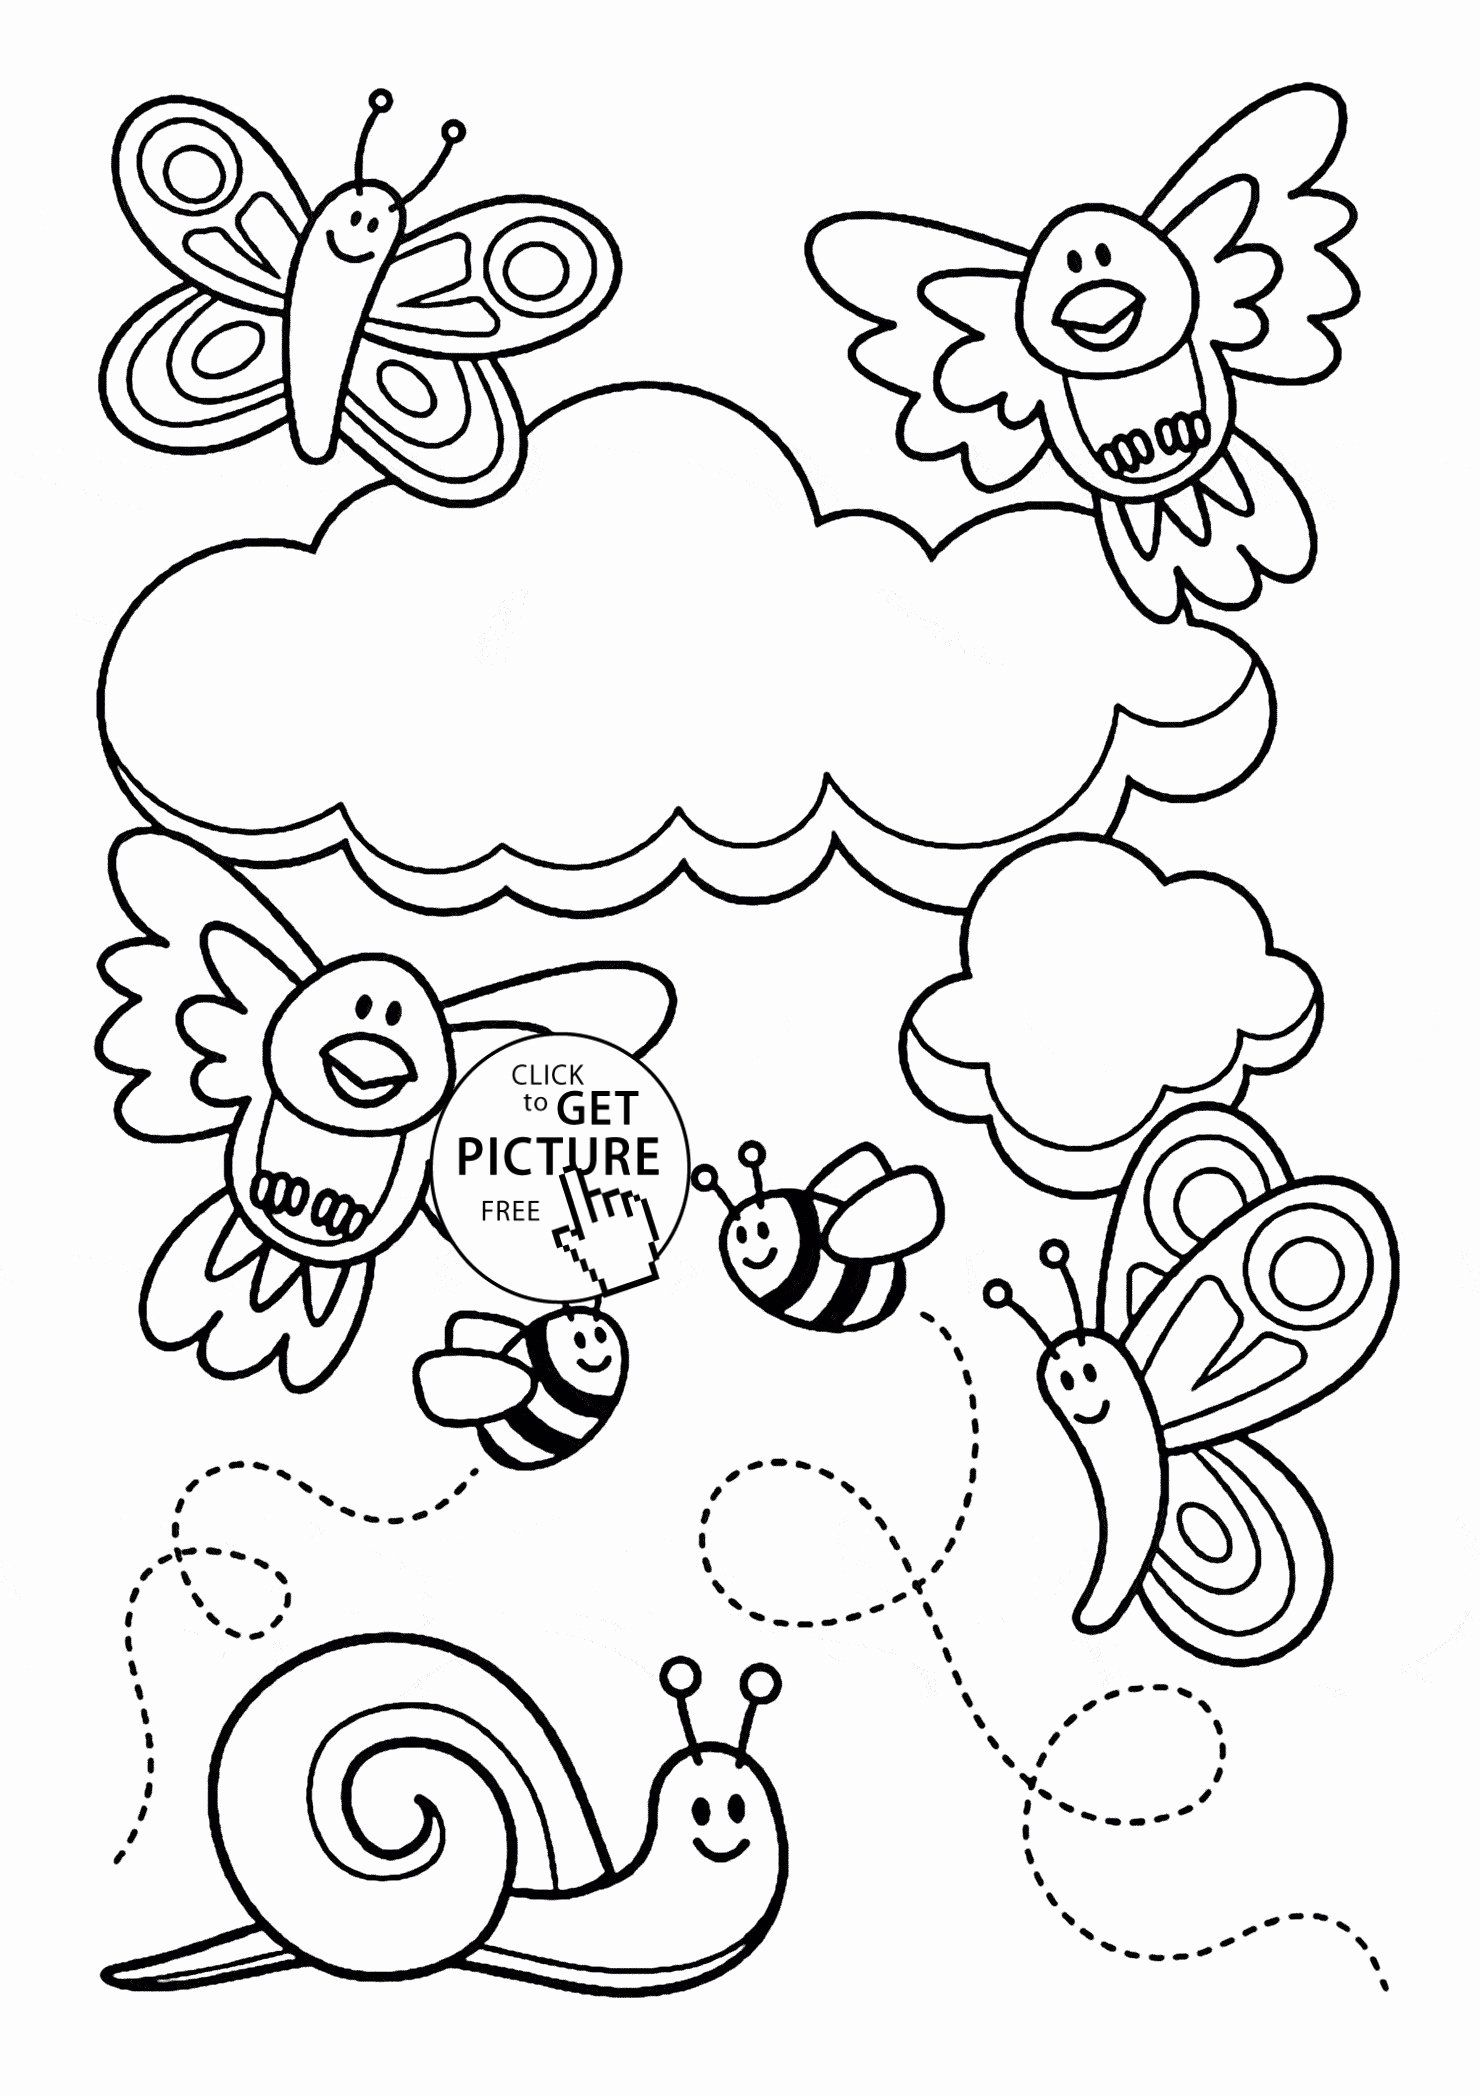 seasons coloring pages seasons coloring pages printables classroom doodles coloring pages seasons